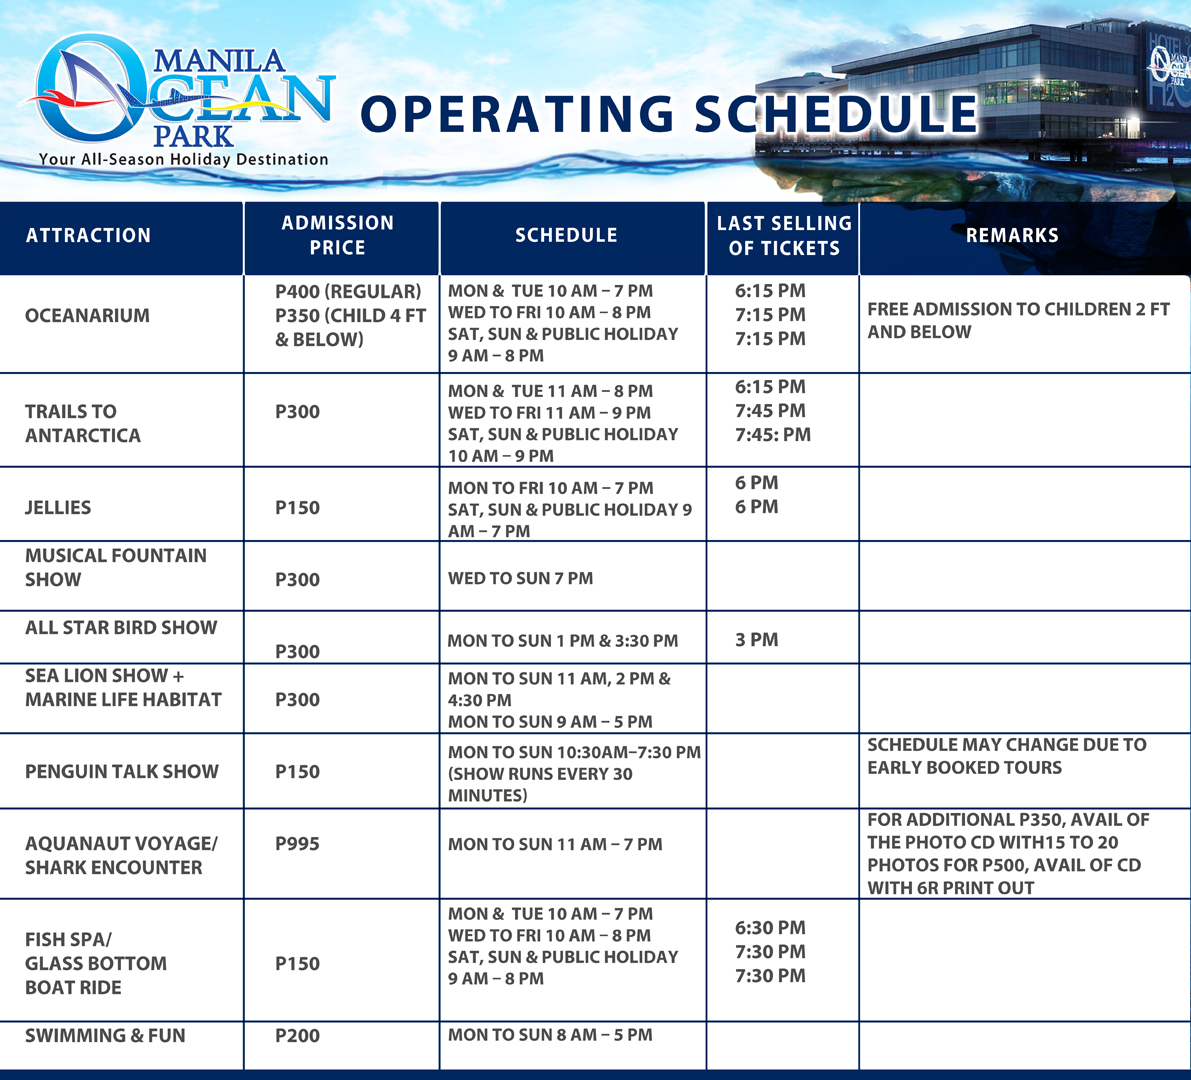 Manila Ocean Park Entrance Fee http://pinoy99.blogspot.com/2013/01/manila-ocean-park-updated-entrance-fee.html